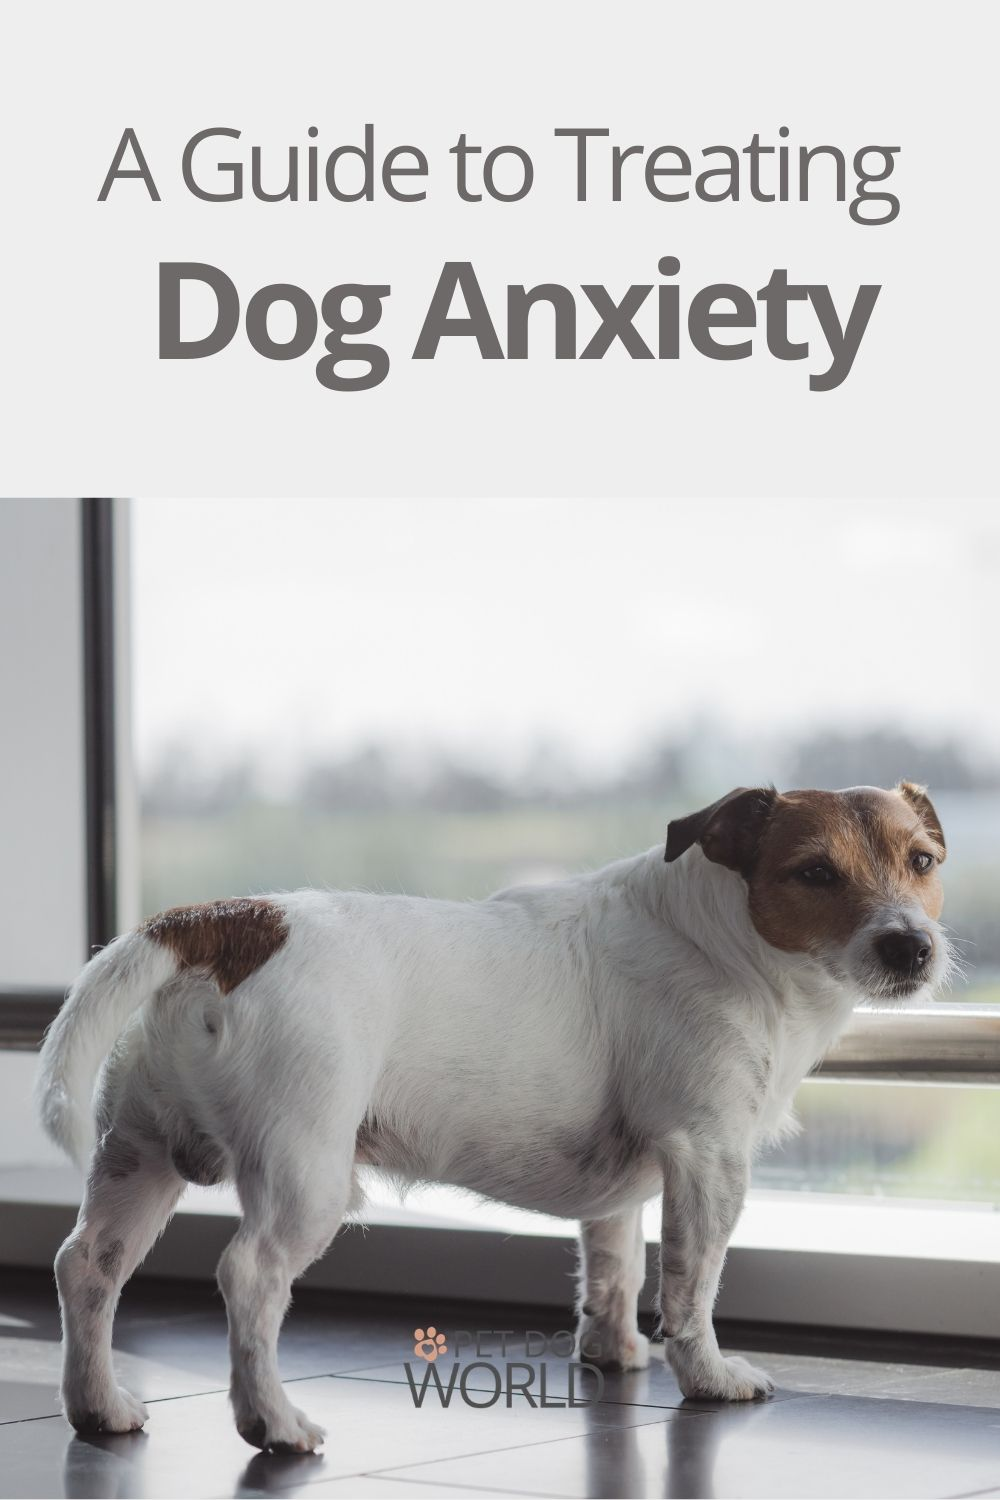 A Guide to Treating Dog Anxiety